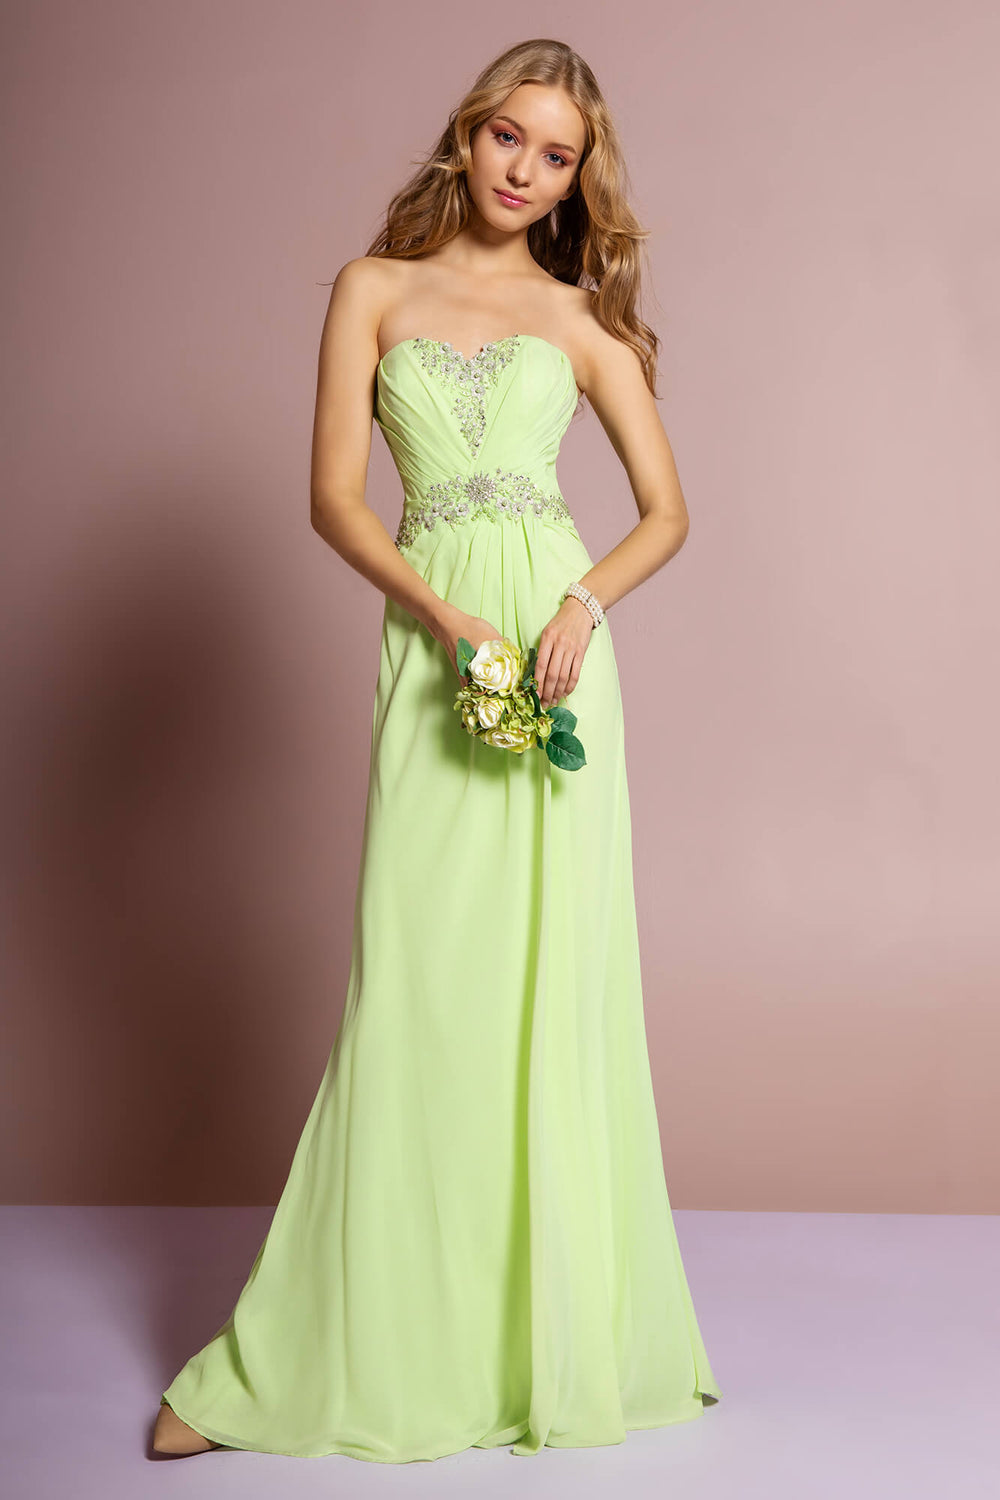 Strapless Sweetheart Long Formal Dress - The Dress Outlet Light Green